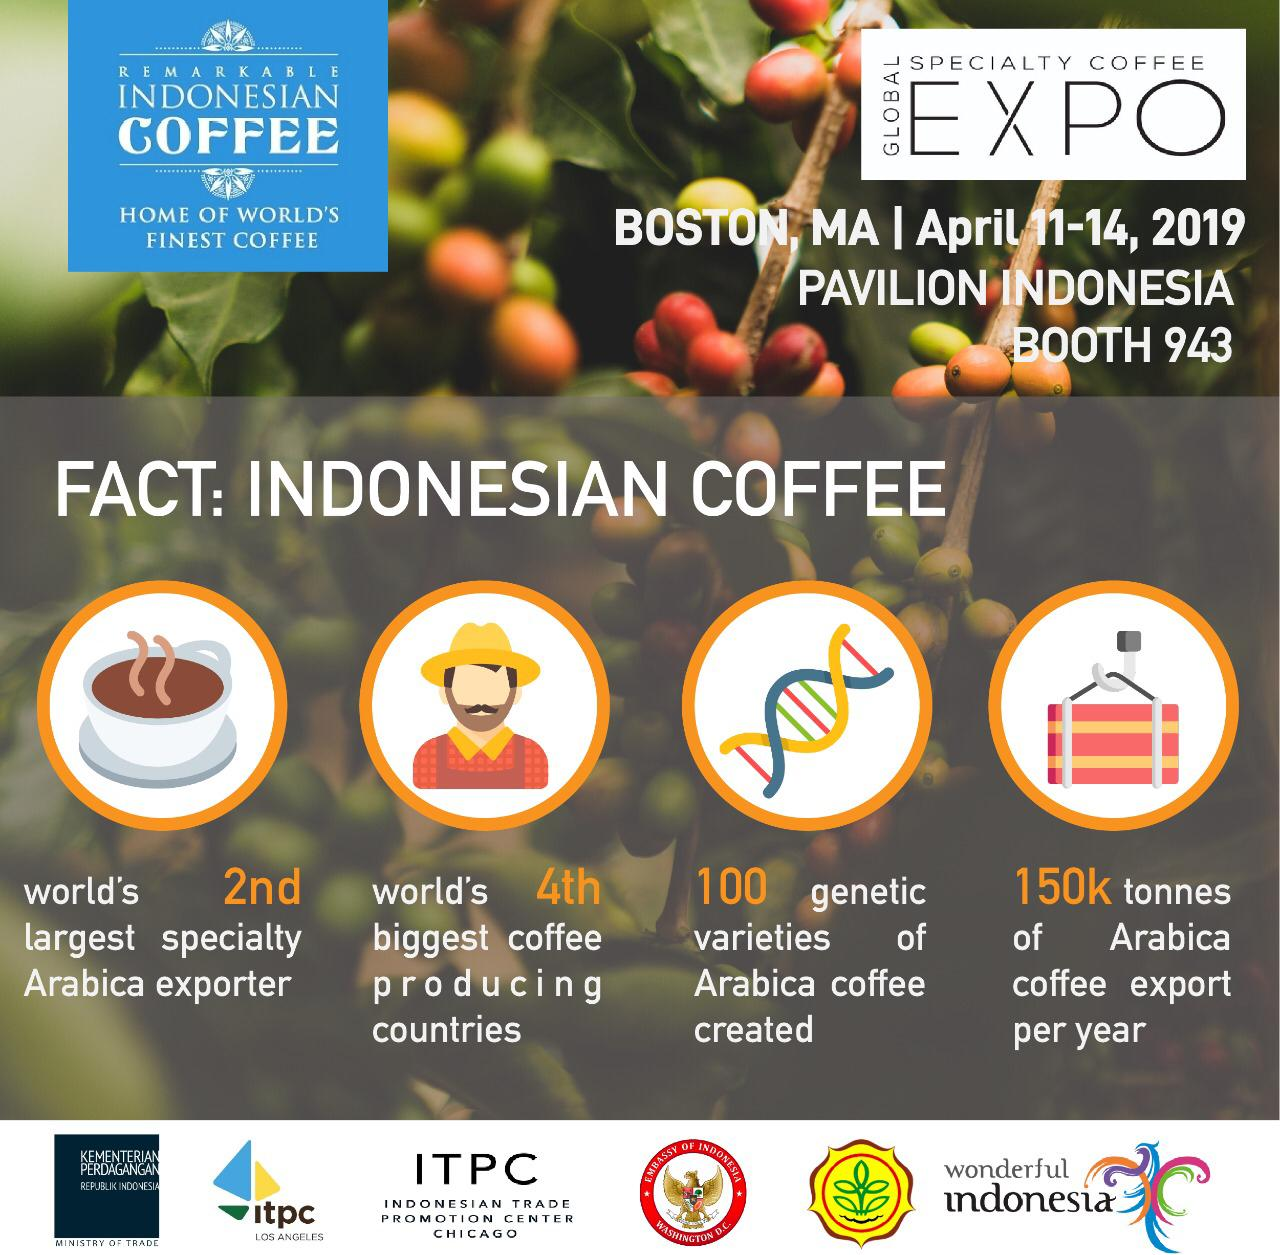 Specialty Coffee Associationof Indonesia (SCAI) - In 2007, several Indonesia coffee farmer groups, exporters, roasters and retailers decided to performed a Specialty Coffee Association of Indonesia (SCAI) to improve and increase the quality of Indonesian Arabica coffee quality and quantity.SCAI were founded in 2008 and its membership are open for individual, institutions and coffee community who deal with specialty coffee (farmerly only Arabica but later Fine Robusta also available) from Indonesia. Members are a uniquely diverse groups of farmers, buyers, roasters, exporters, retailers and individual/person who shares the same mission.